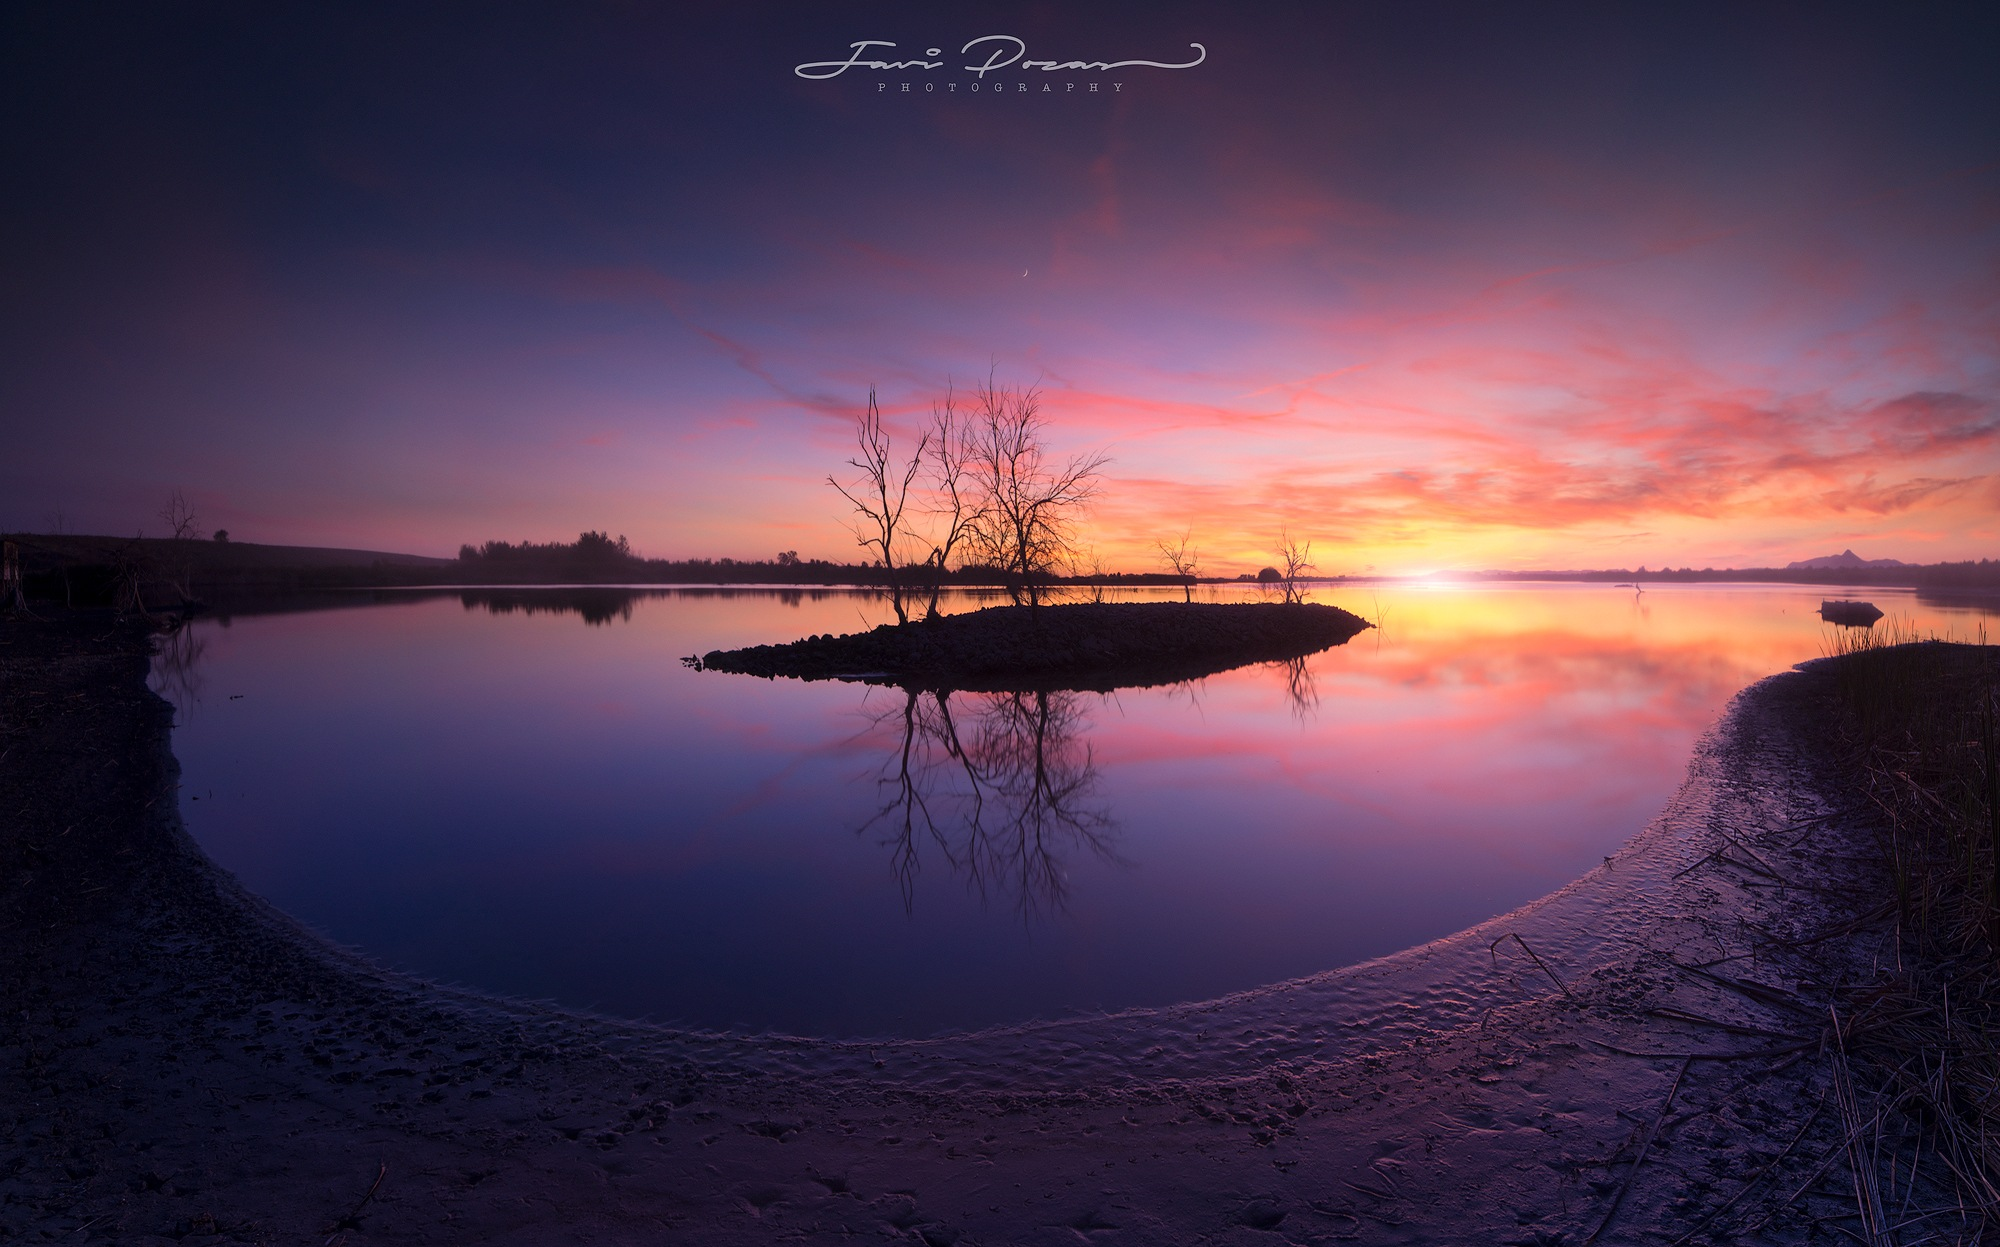 Pink sunset at the lake by Javi Pozas